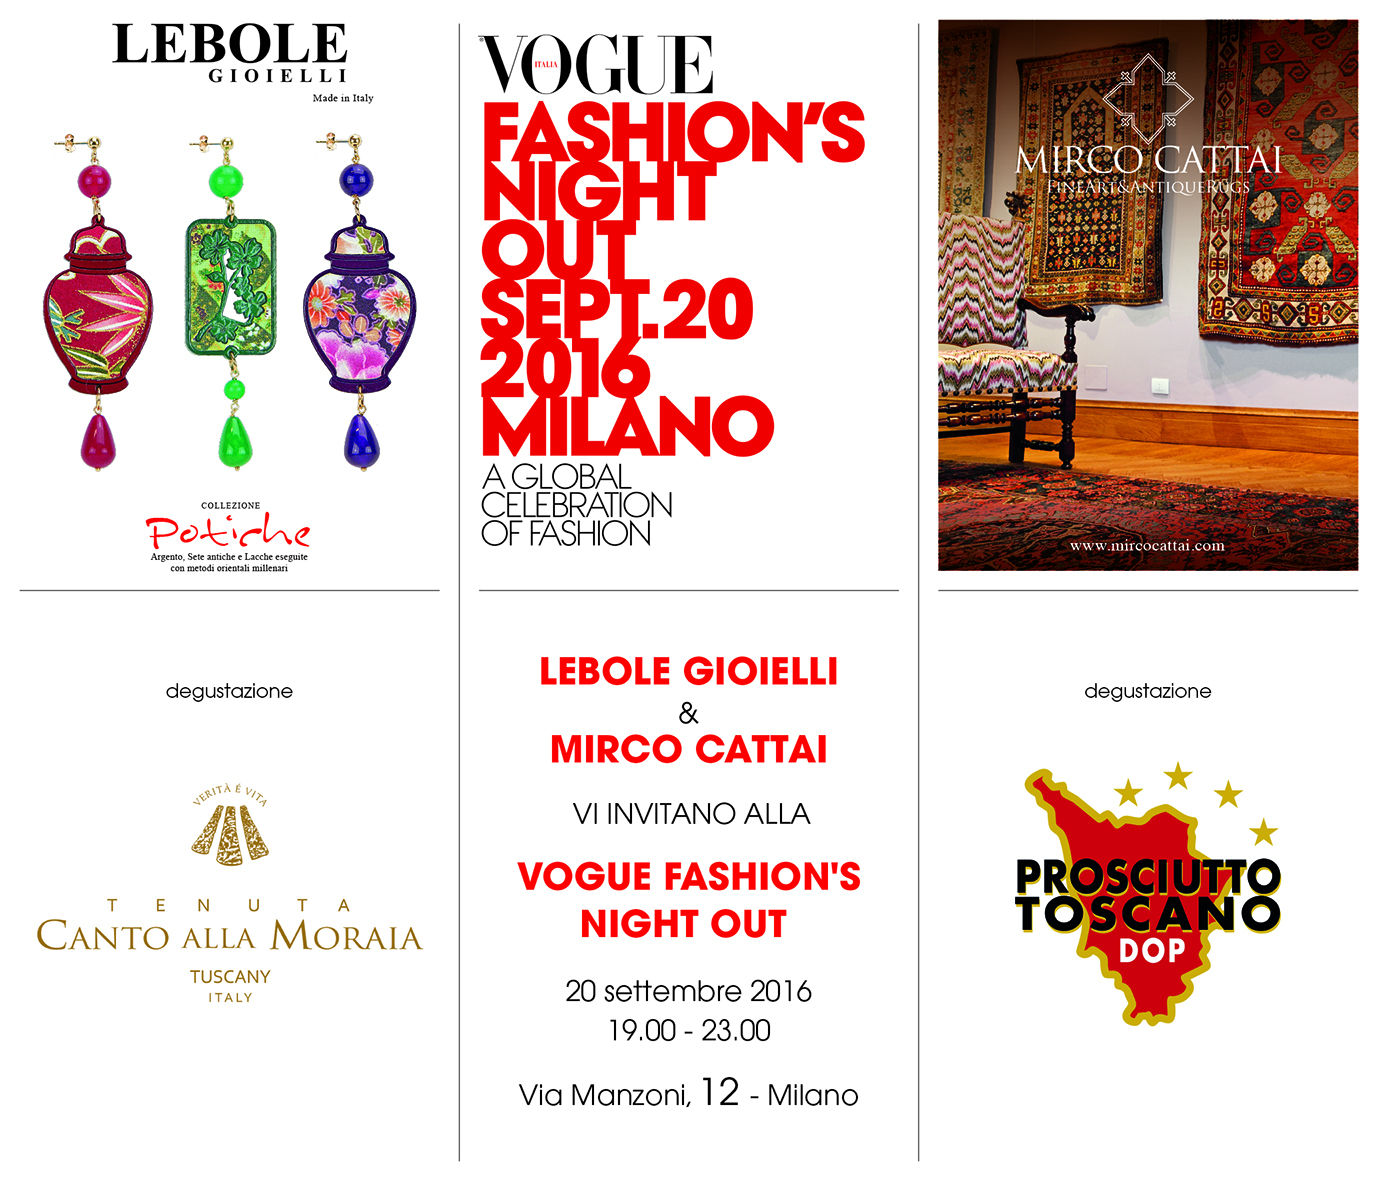 Lebole Gioielli & Mirco Cattai – Vogue Fashion's Night – 20 Settembre Milano.